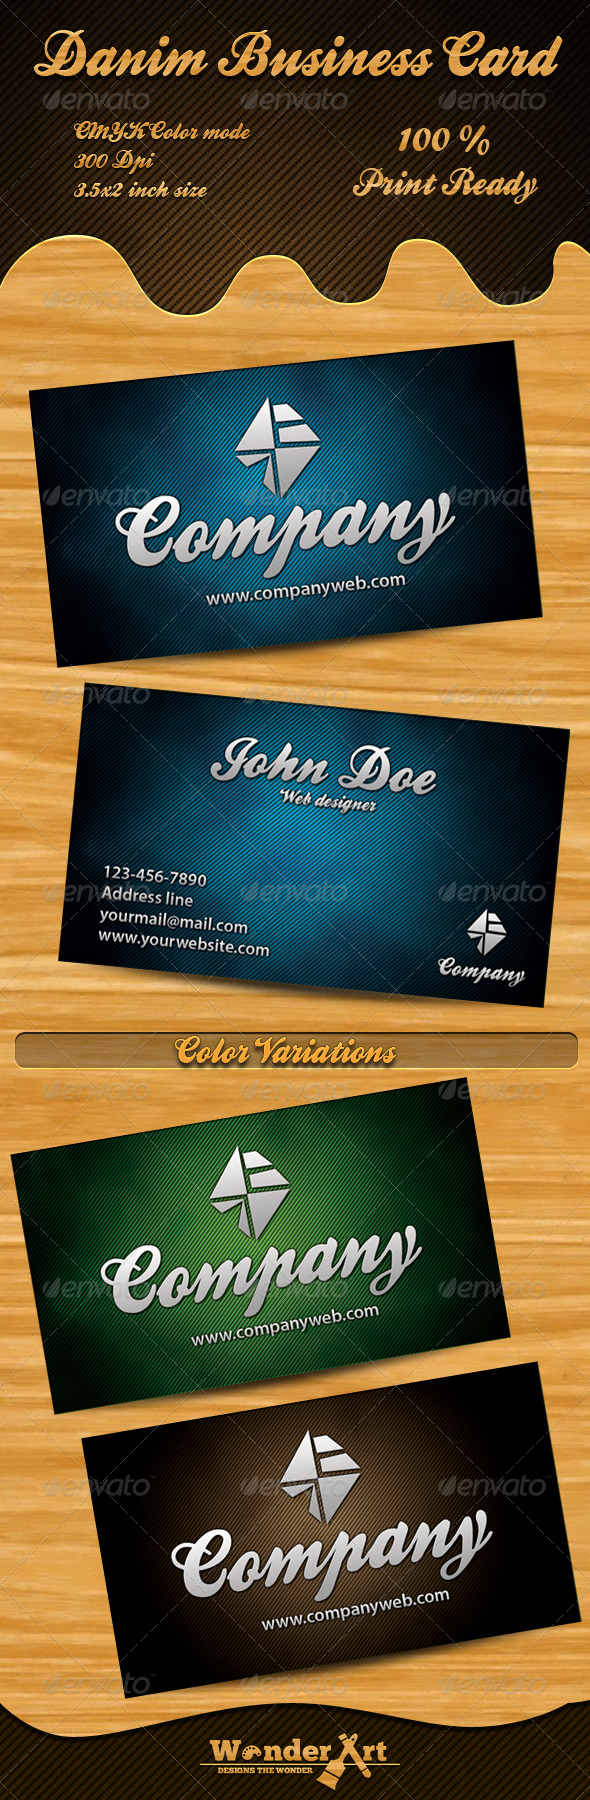 denim business cards